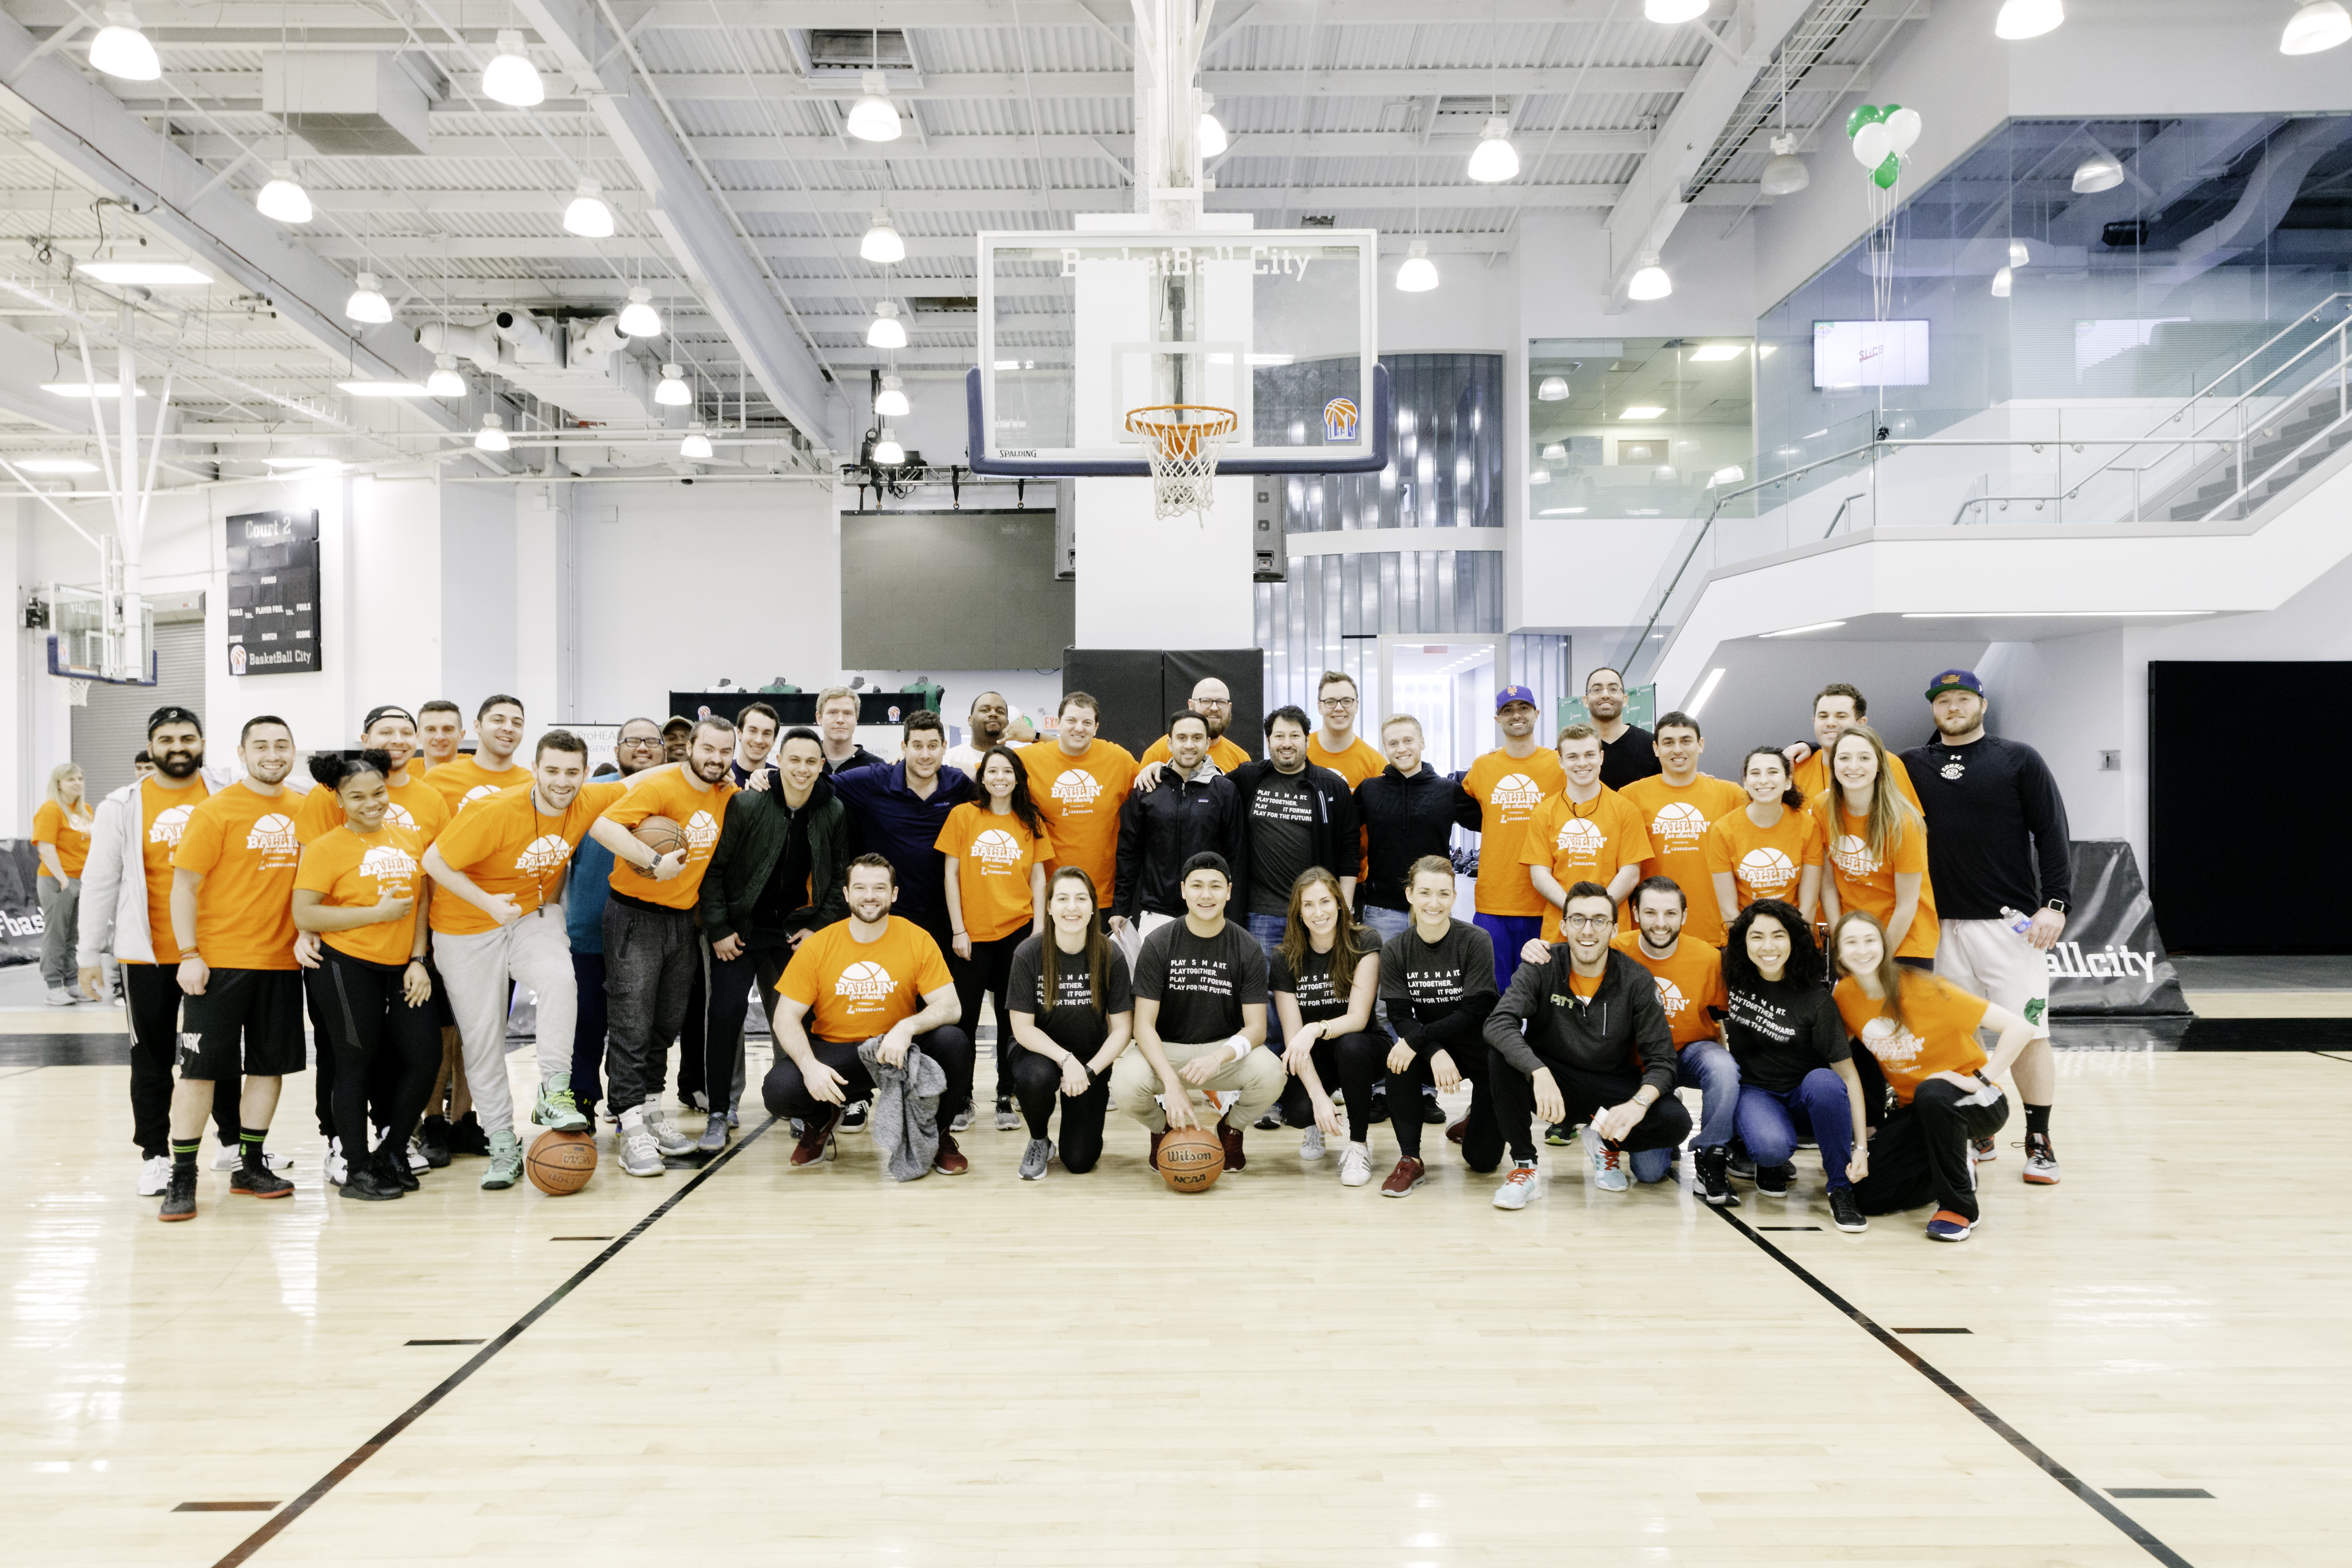 Photographic documentation of the third annual Ballin for Charity event run by LeagueApps